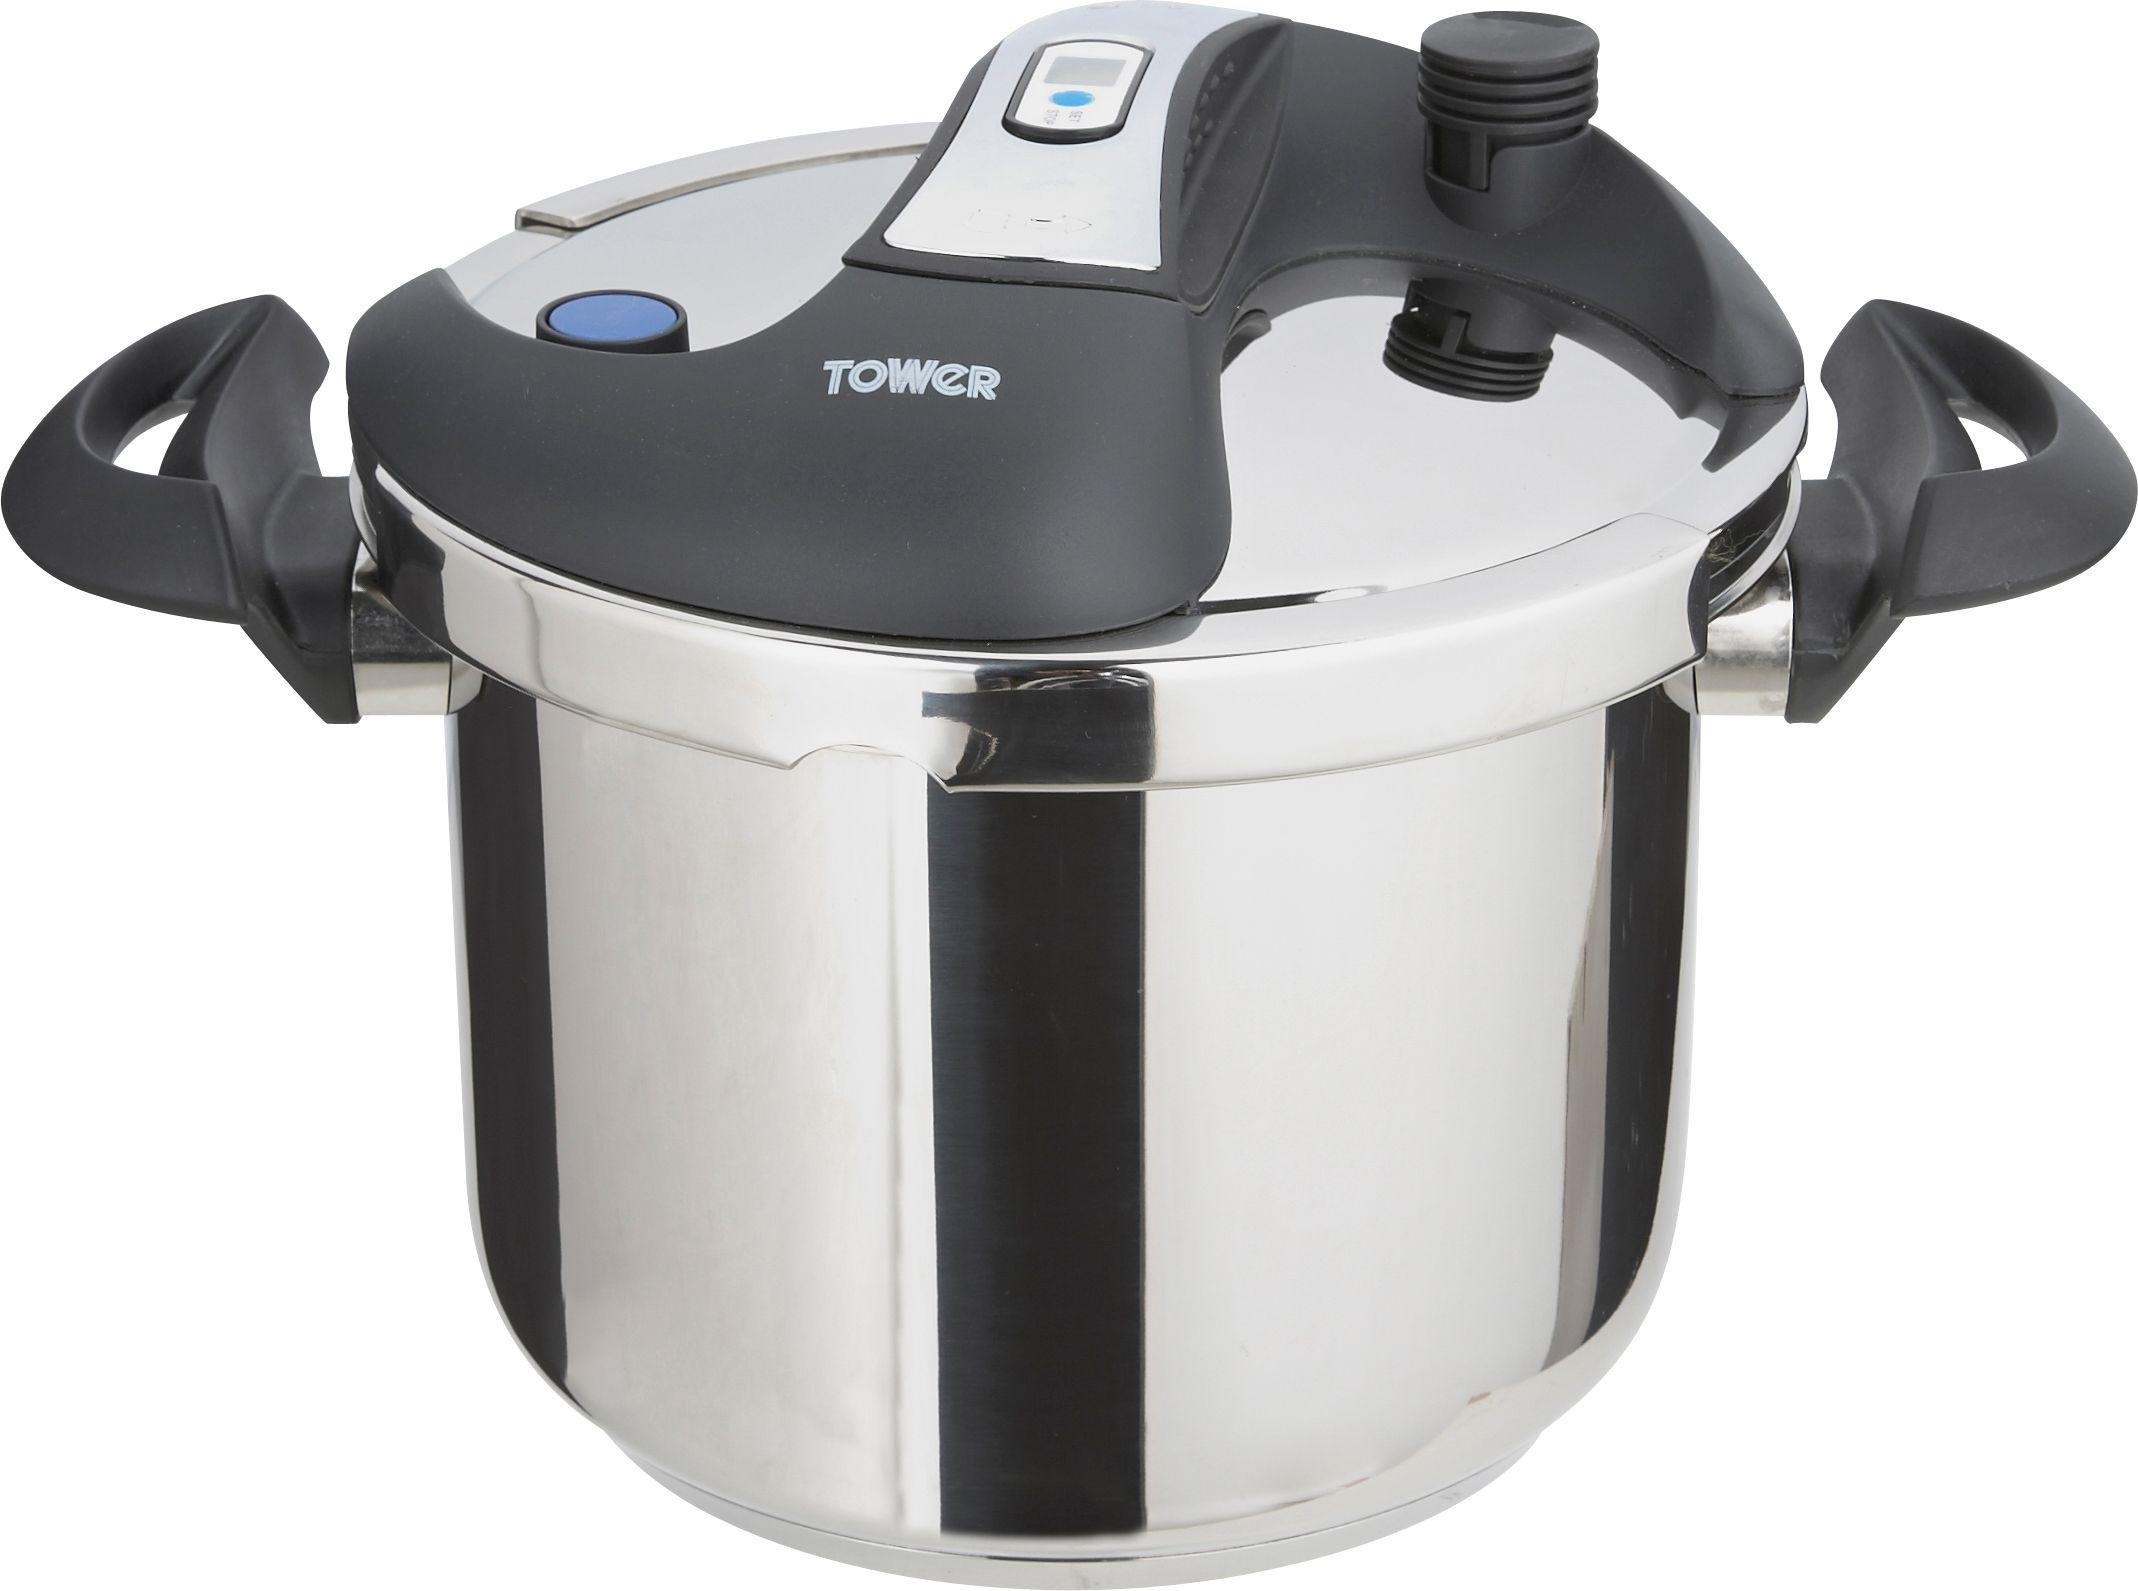 Tower 6 Litre Stainless Steel Time Pressure Cooker